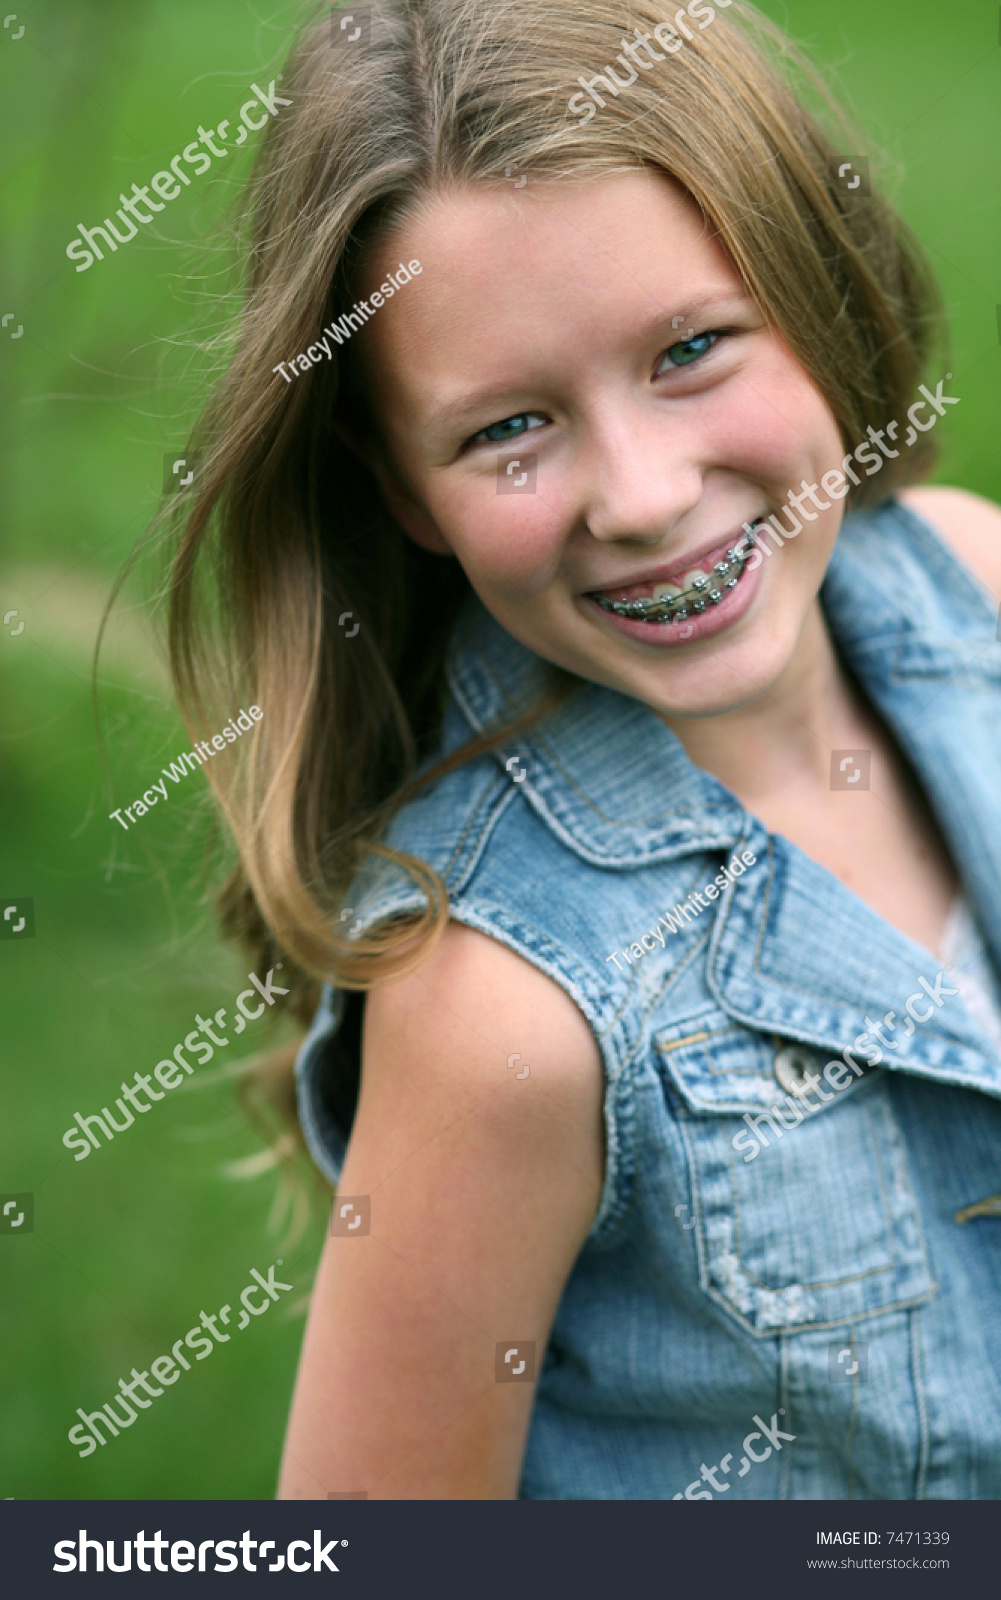 Useful message Young teen girls braces facial remarkable, this